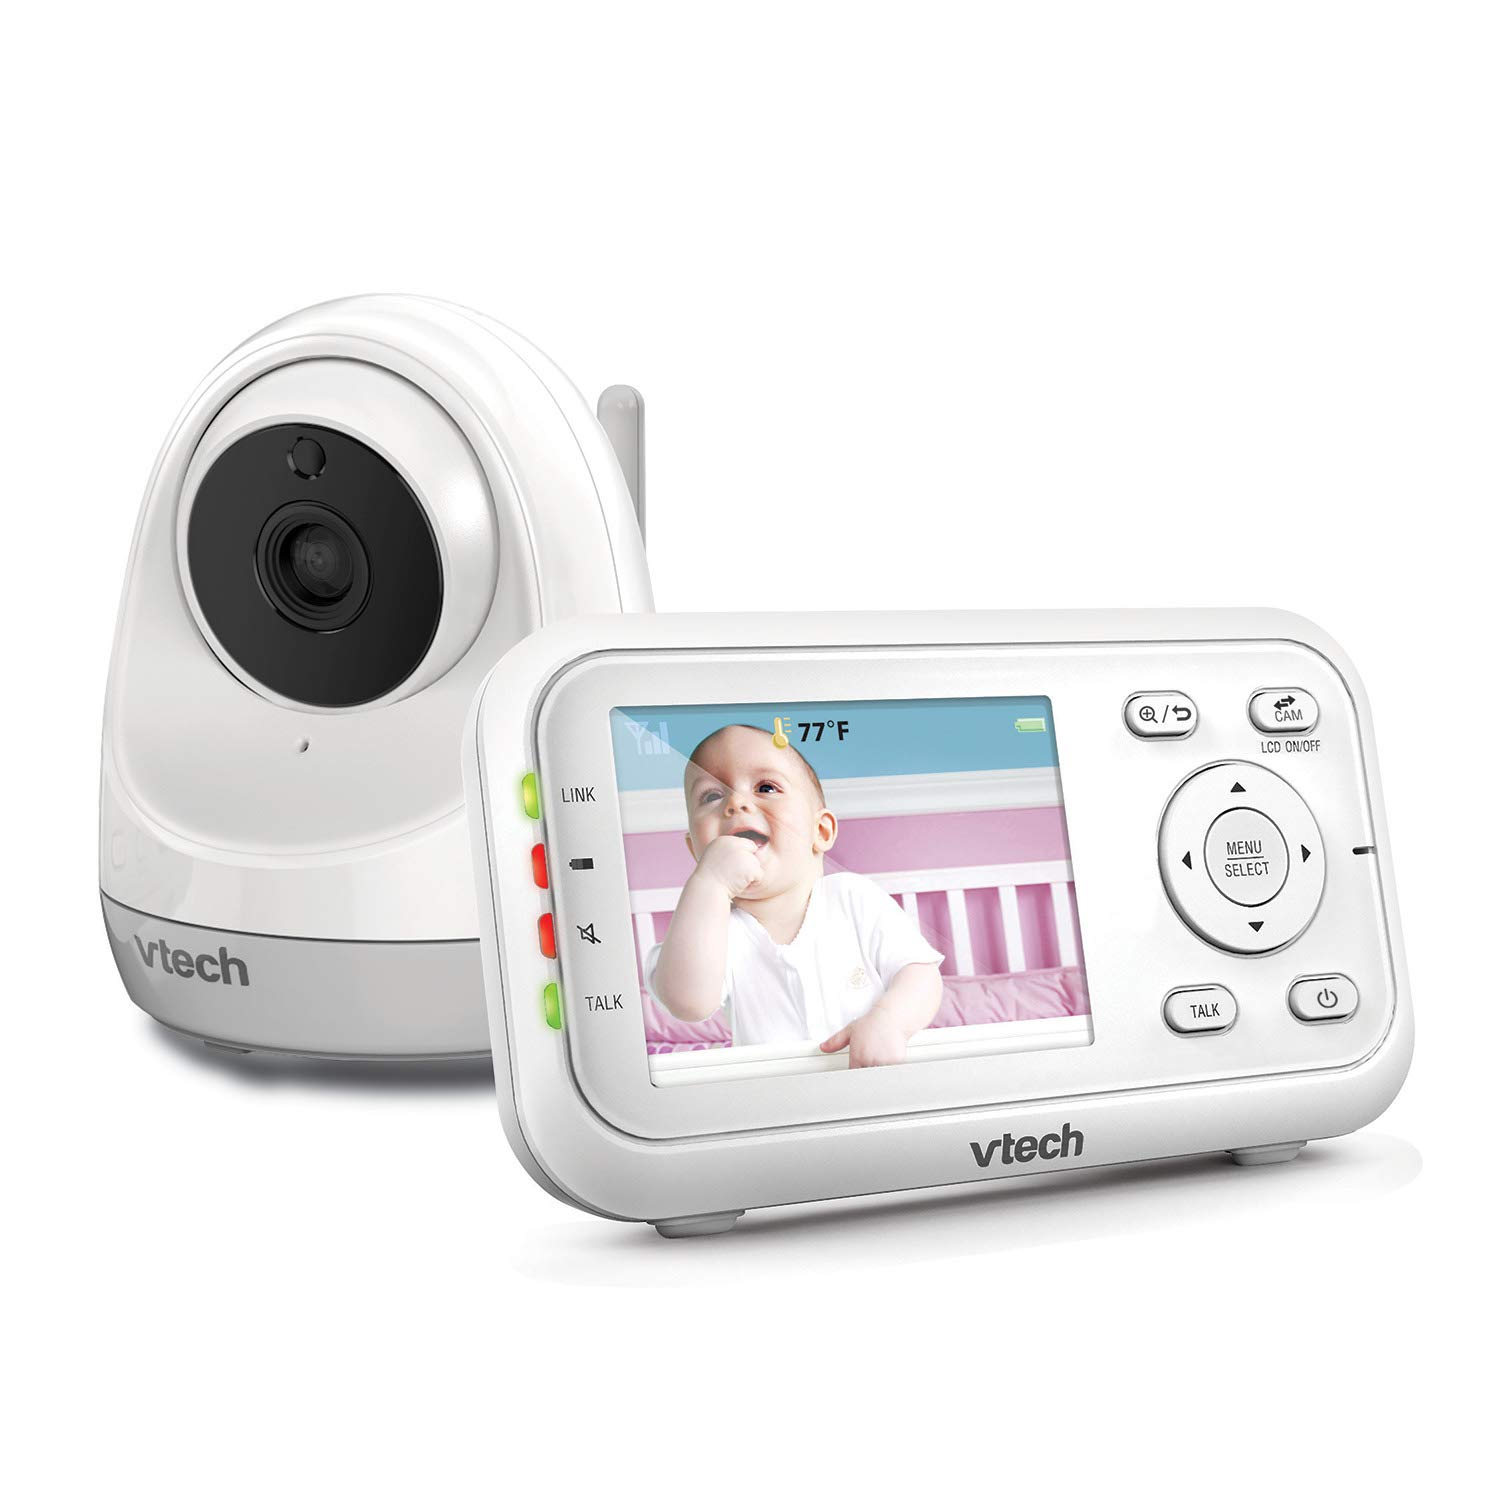 """VTech VM3261 Video Baby Monitor with Pan, Tilt, Zoom Camera, 1000ft Long Range, Auto Night Vision, 2.8"""" Screen, 2-Way Audio Talk, Motion & Temperature Alert, Lullabies and Wall-mountable with Bracket"""